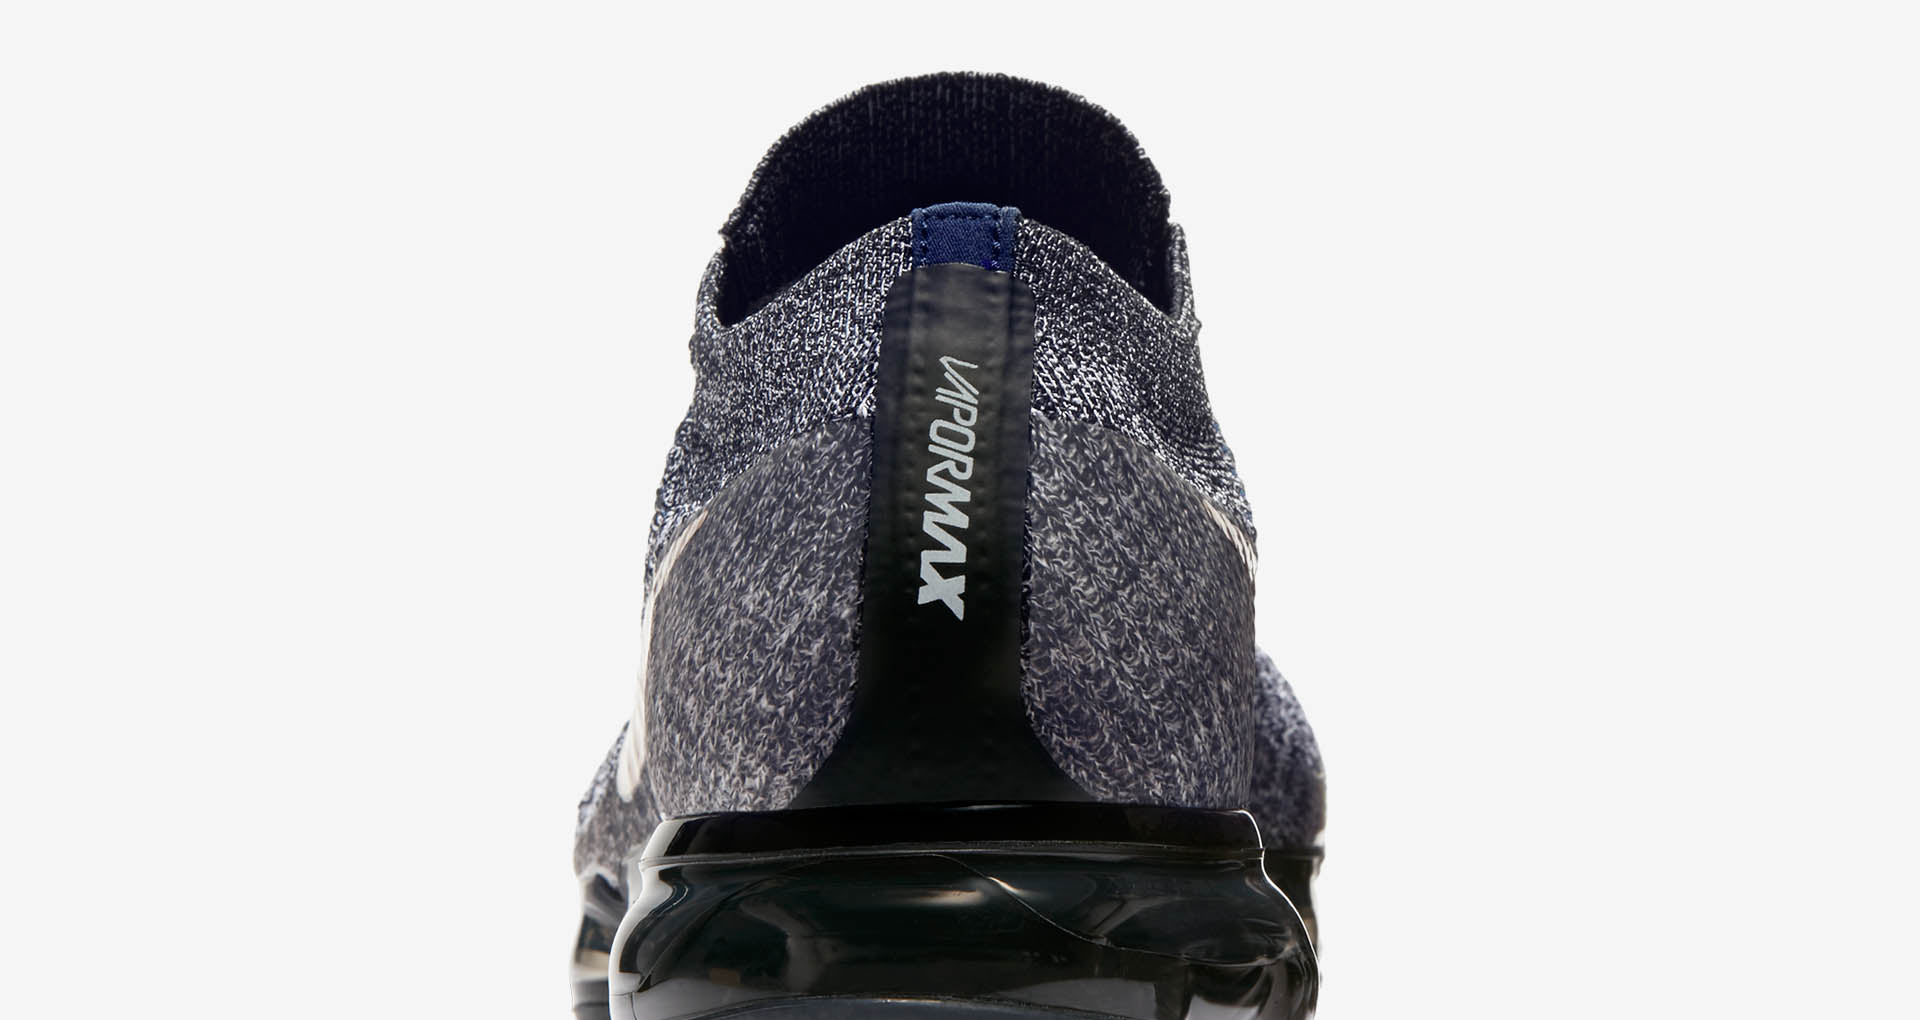 0a98ee4003 Nike Air Vapormax Flyknit 849558-010. BLACK/MTLC RED BRONZE-COLLEGE NAVY  Price: £169.00. Launch: Thursday 3rd August 08:00BST